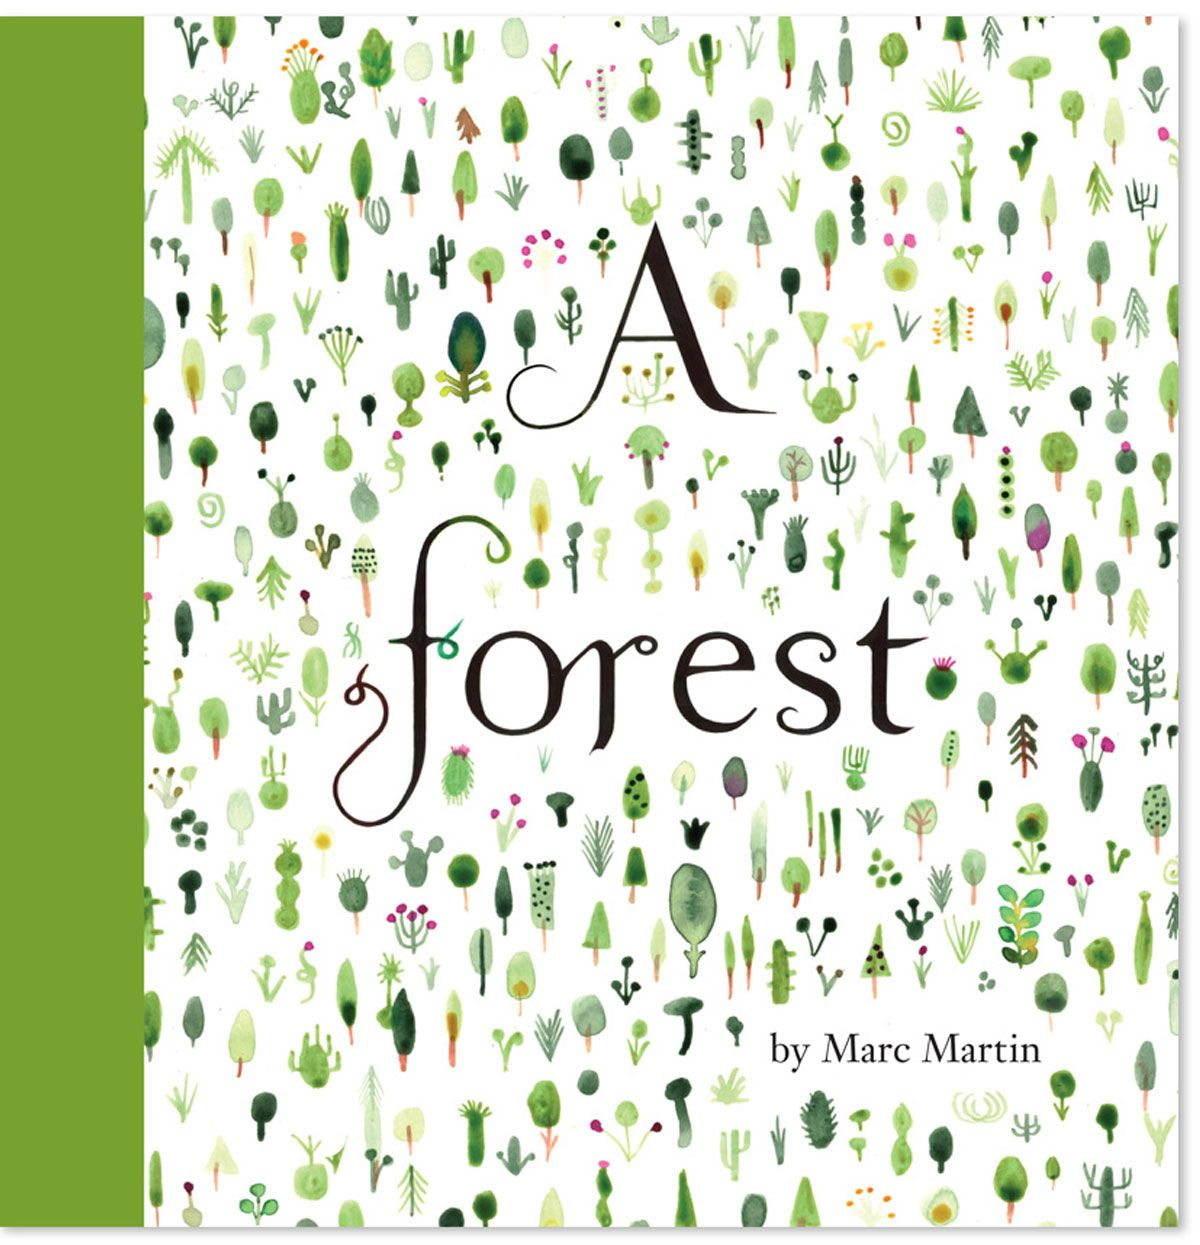 A Forest by Marc Martin | Marc martin, Picture book, Earth